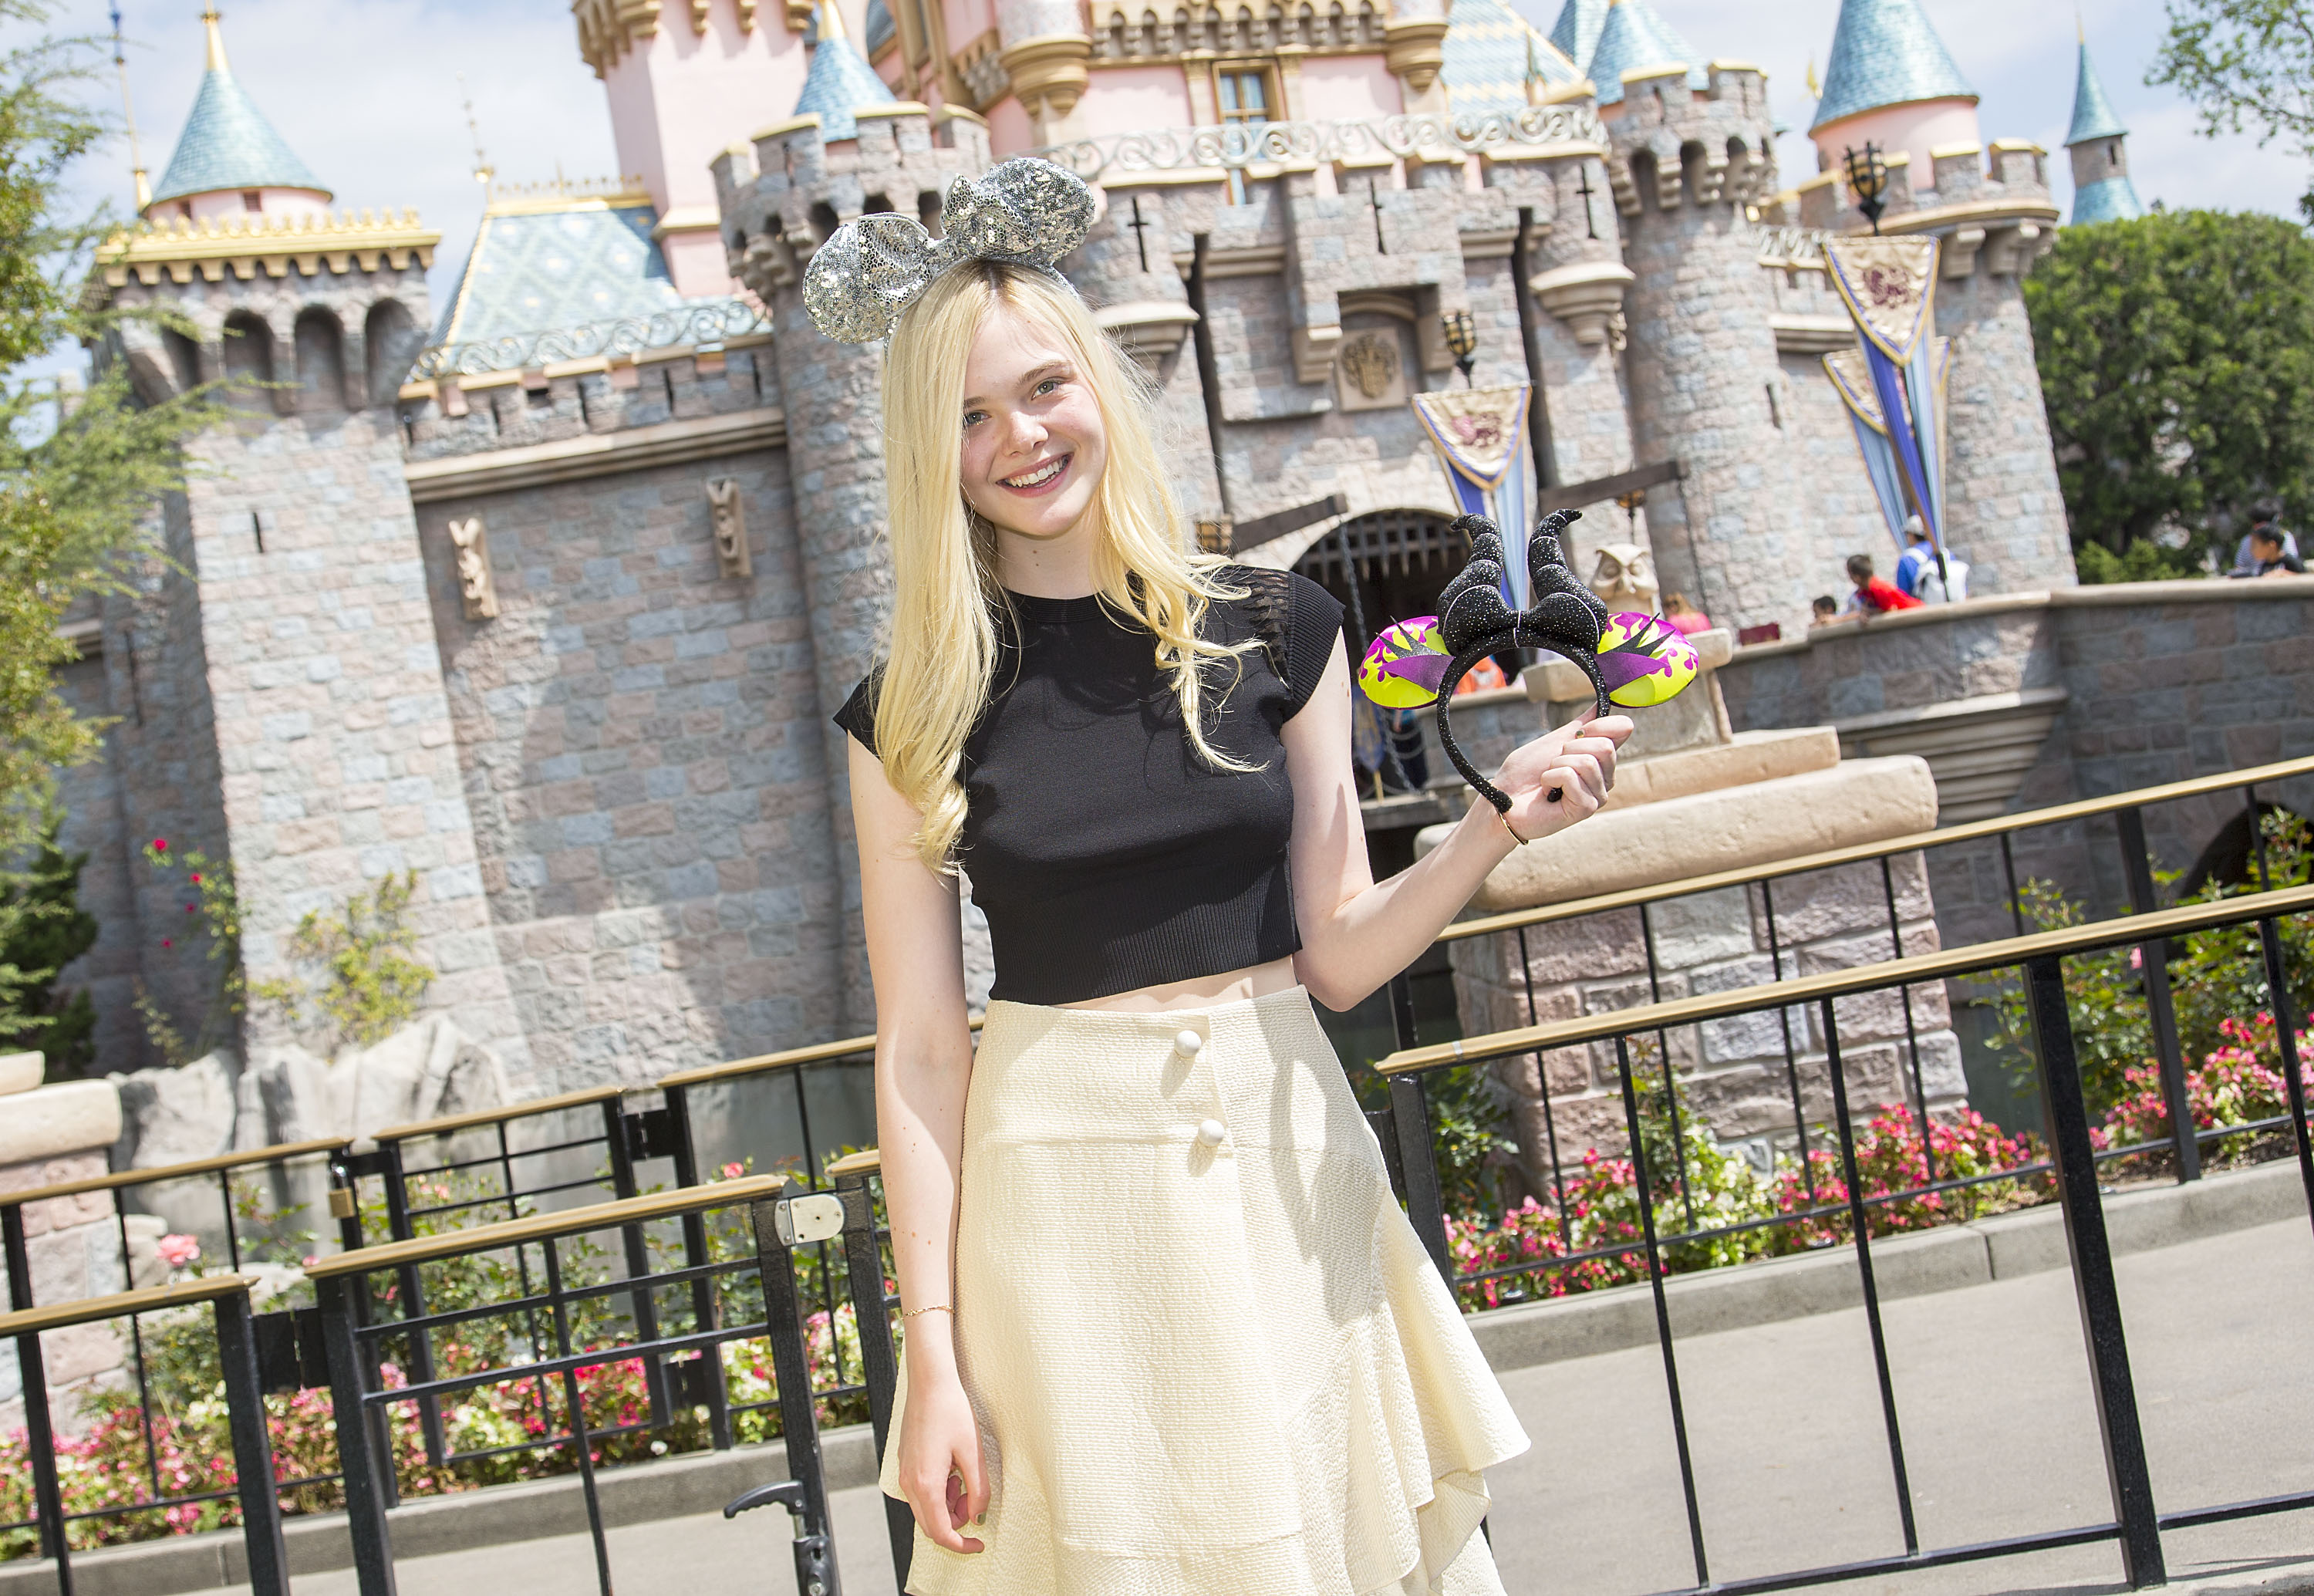 Maleficent-Elle Fanning-PROMO PHOTO-17ABRIL2014-01